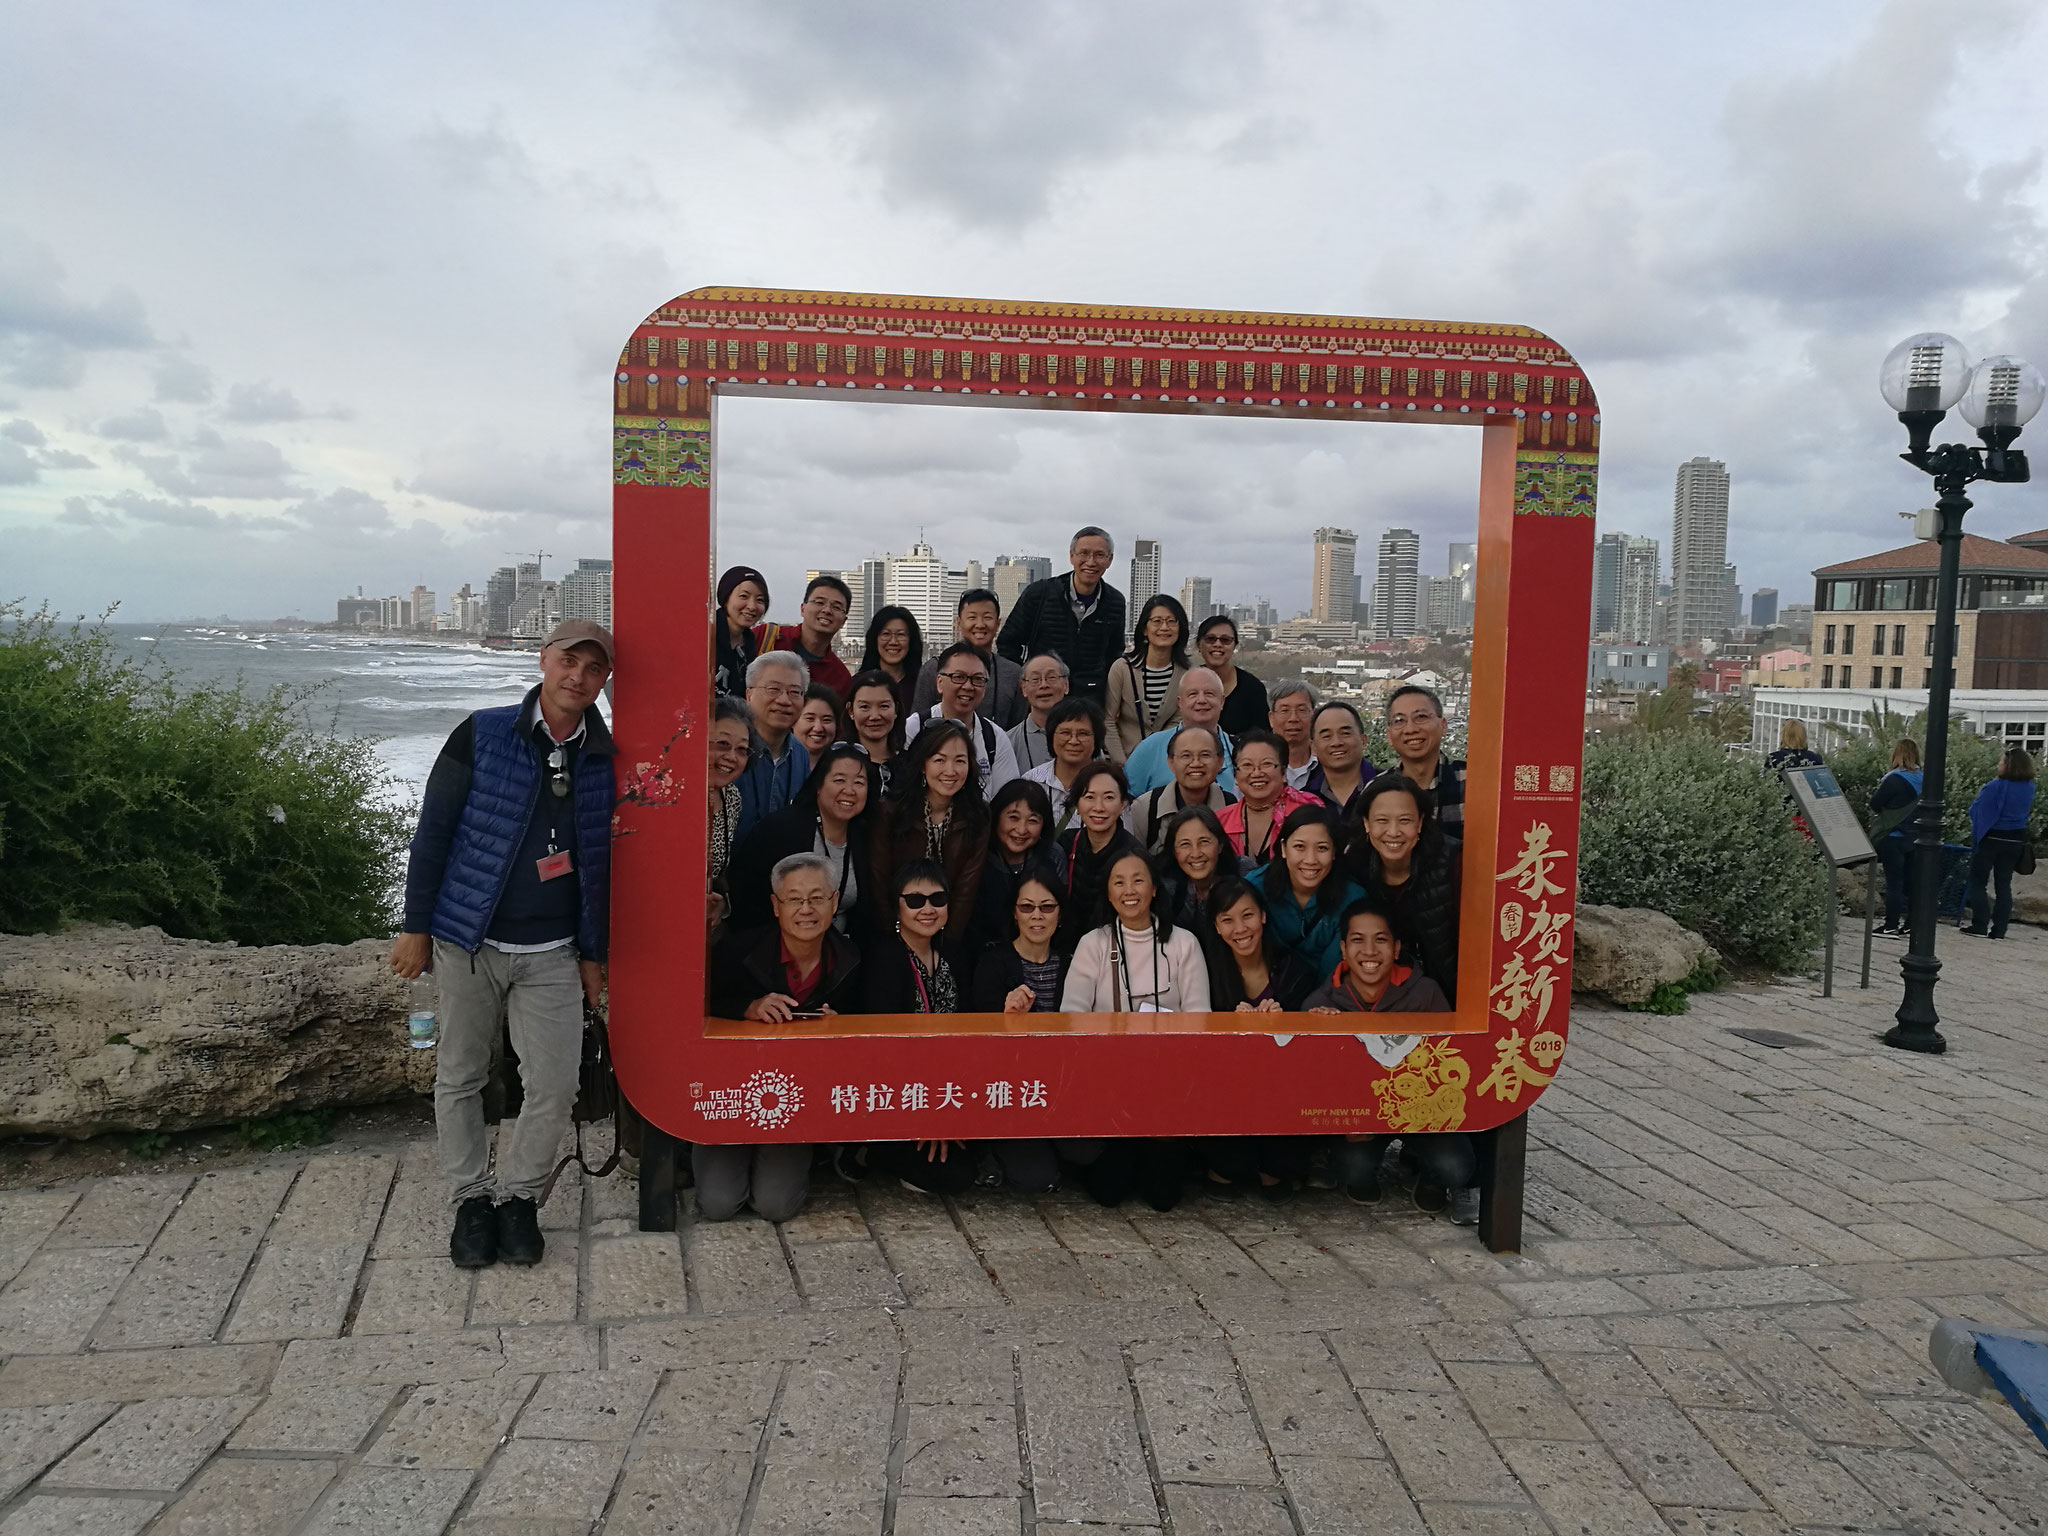 American Chinese Evangelical group in Jaffa, 2018